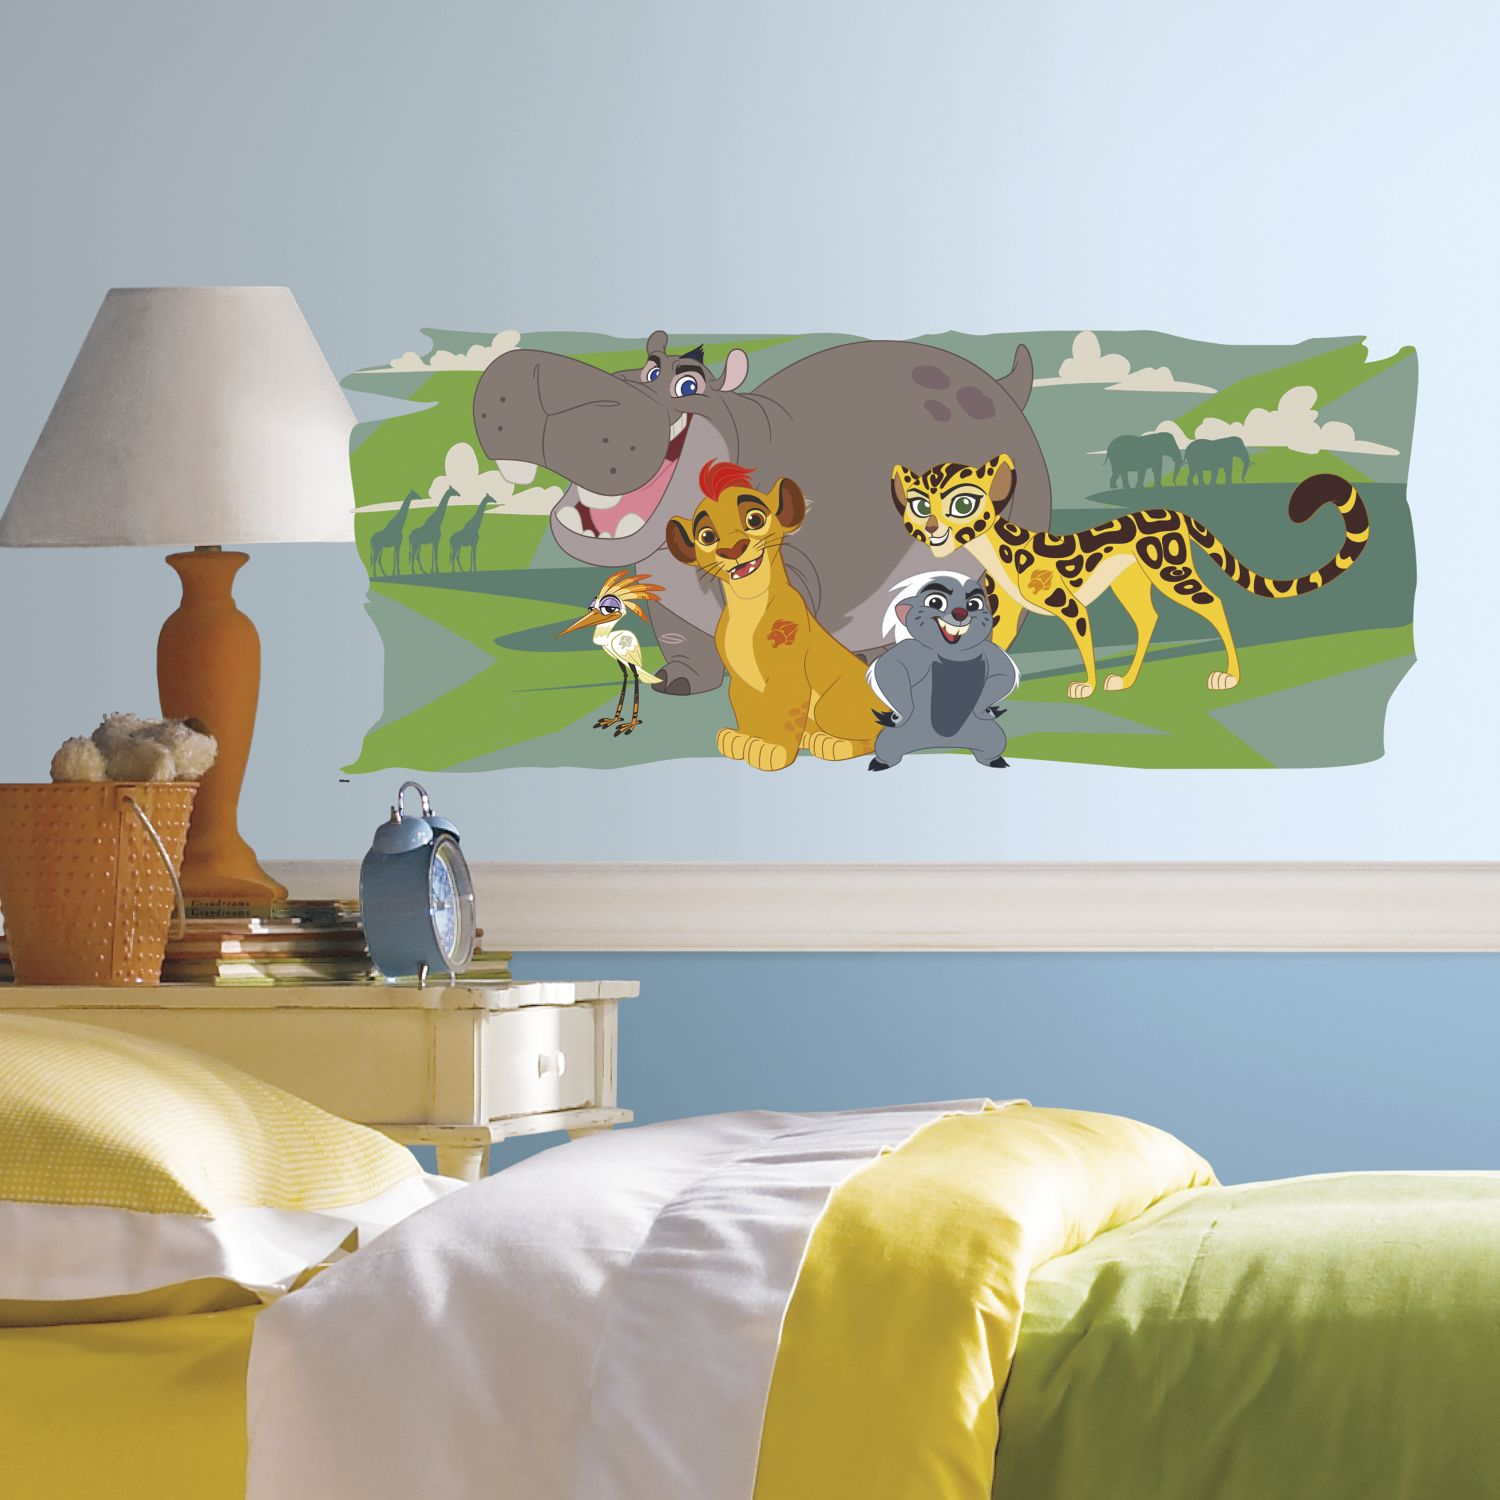 100 giant wall mural stickers 28 comic wall stickers large giant wall mural stickers the lion guard and friends wall decals